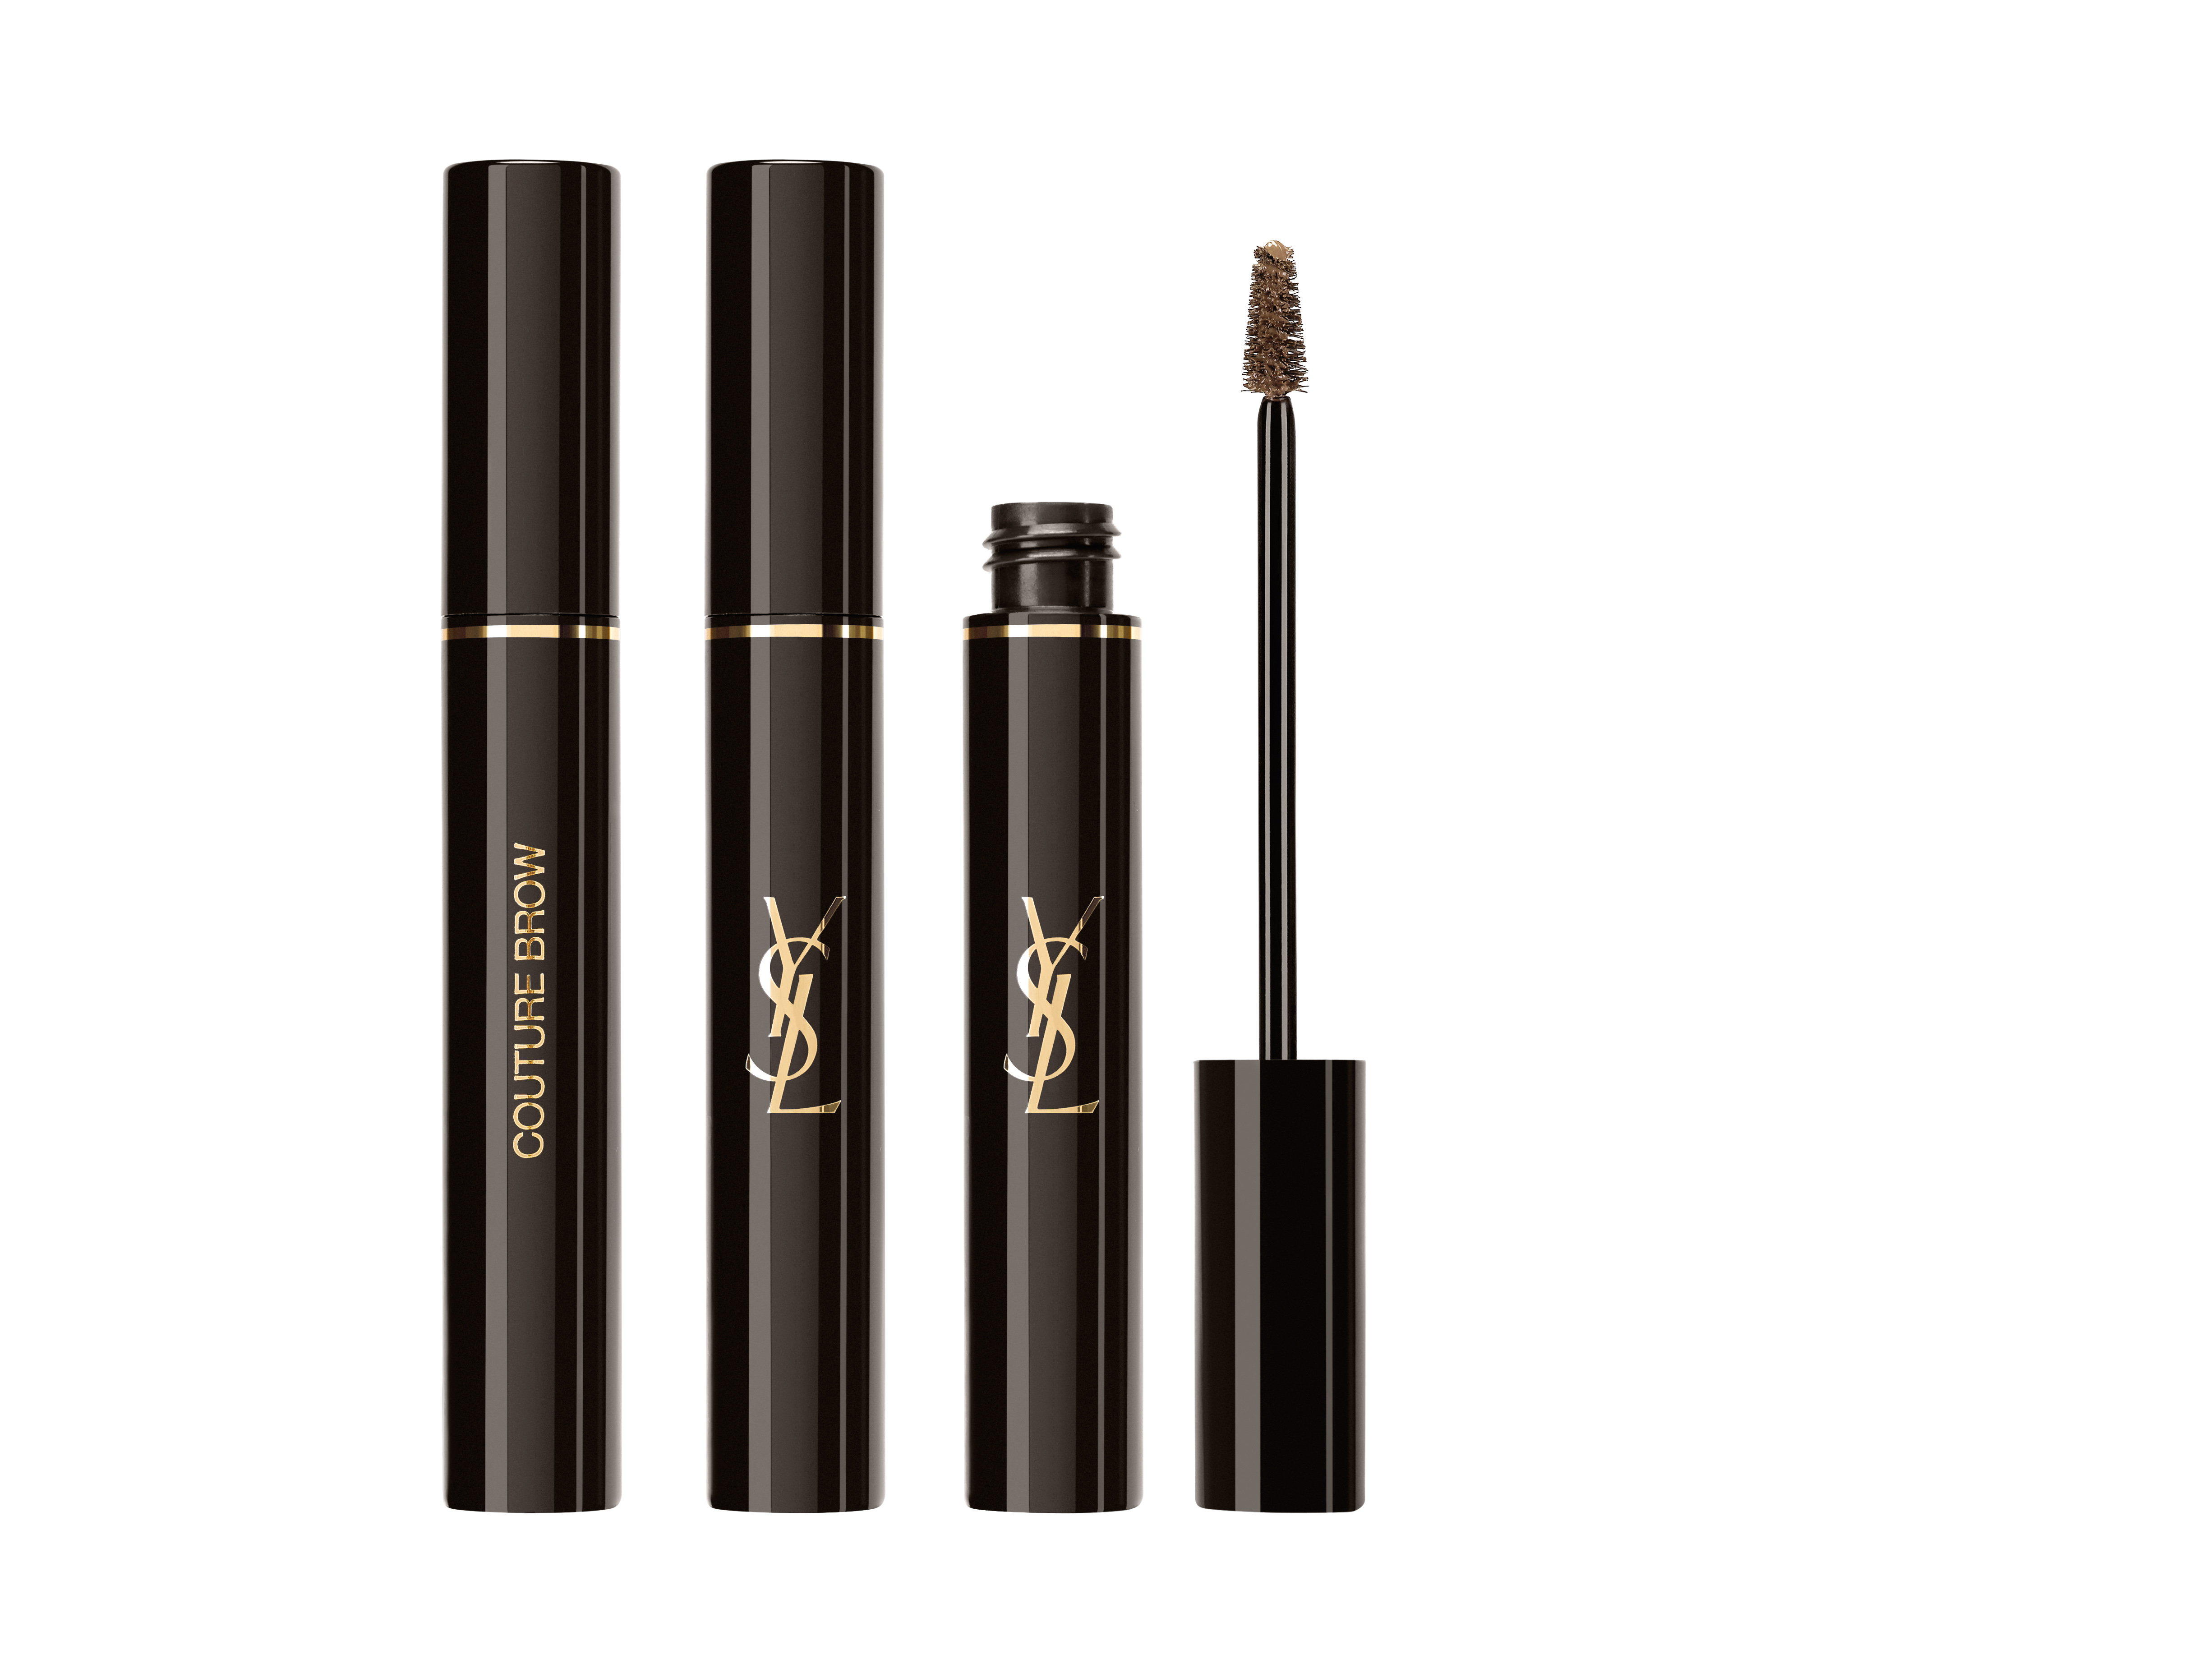 AUTOMNE FALL 15_MASCARA COUTURE BROW n 2 Ysl